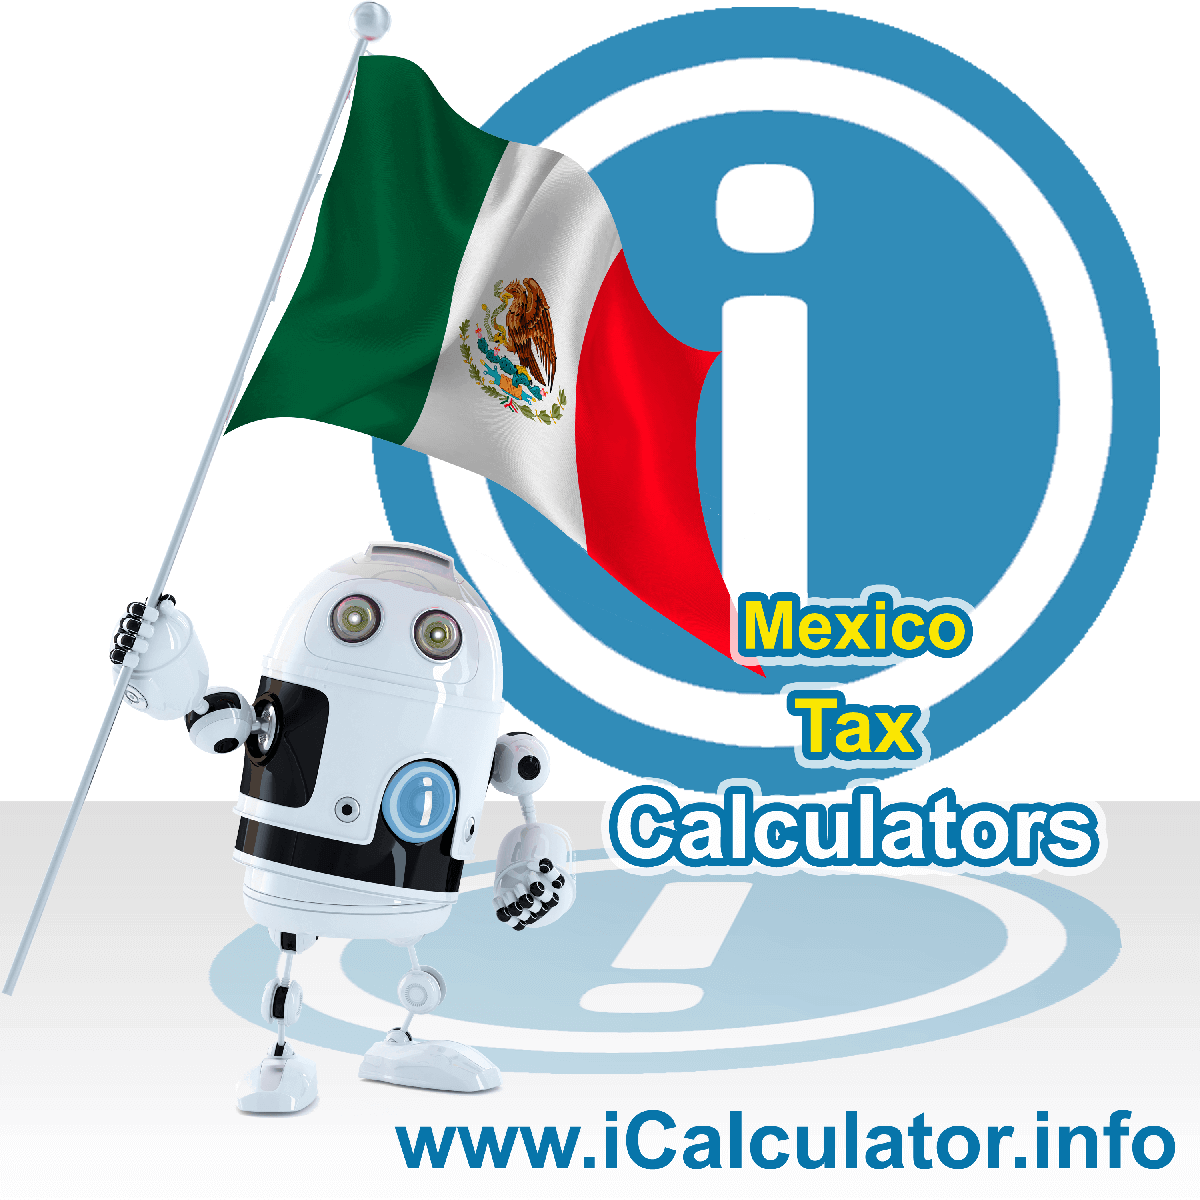 Mexico Tax Calculator. This image shows the Mexicoese flag and information relating to the tax formula for the Mexico Tax Calculator